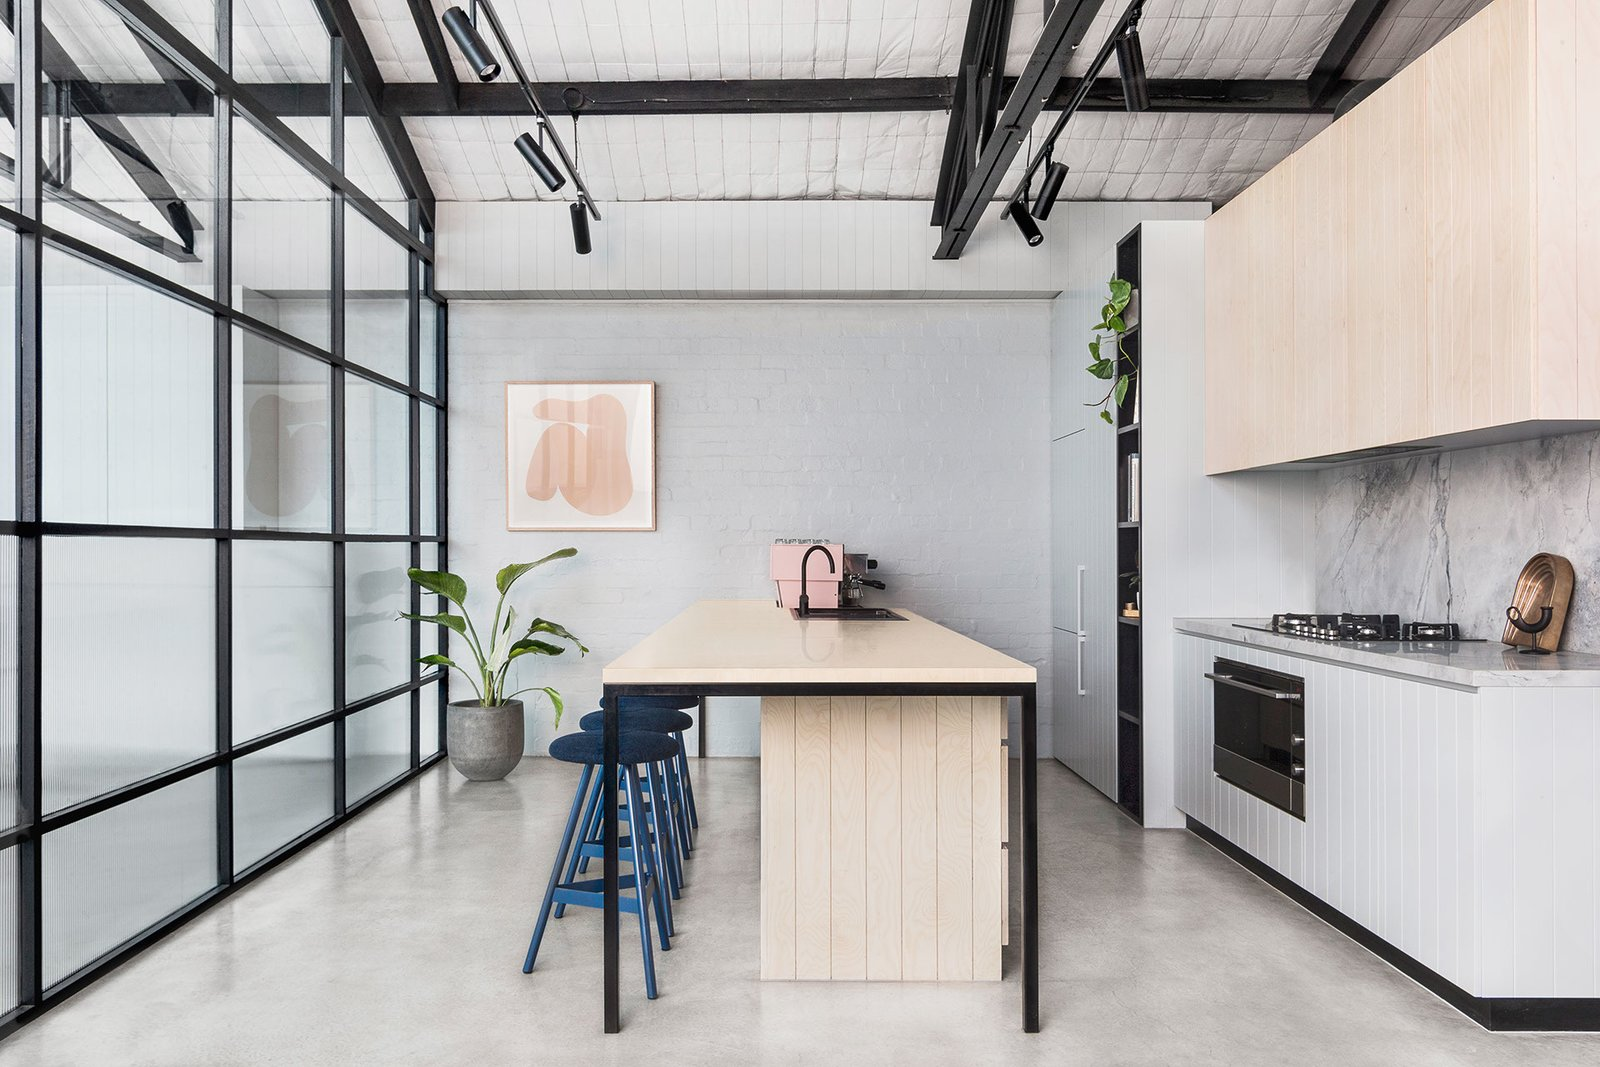 Tagged: Kitchen, Marble Counter, Wood Cabinet, Concrete Floor, Track Lighting, Wall Oven, Range, Drop In Sink, and Marble Backsplashe. An Art Deco Warehouse in Melbourne Is Converted Into a Shared Office Space - Photo 12 of 14